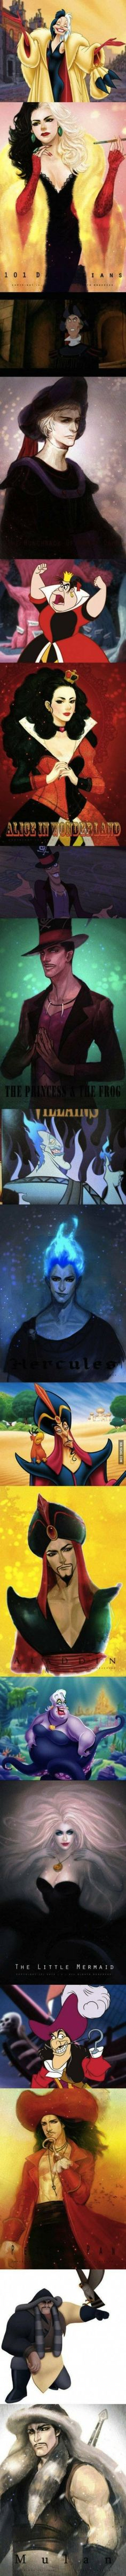 What Disney Villains Would Look Like if They Were Hot